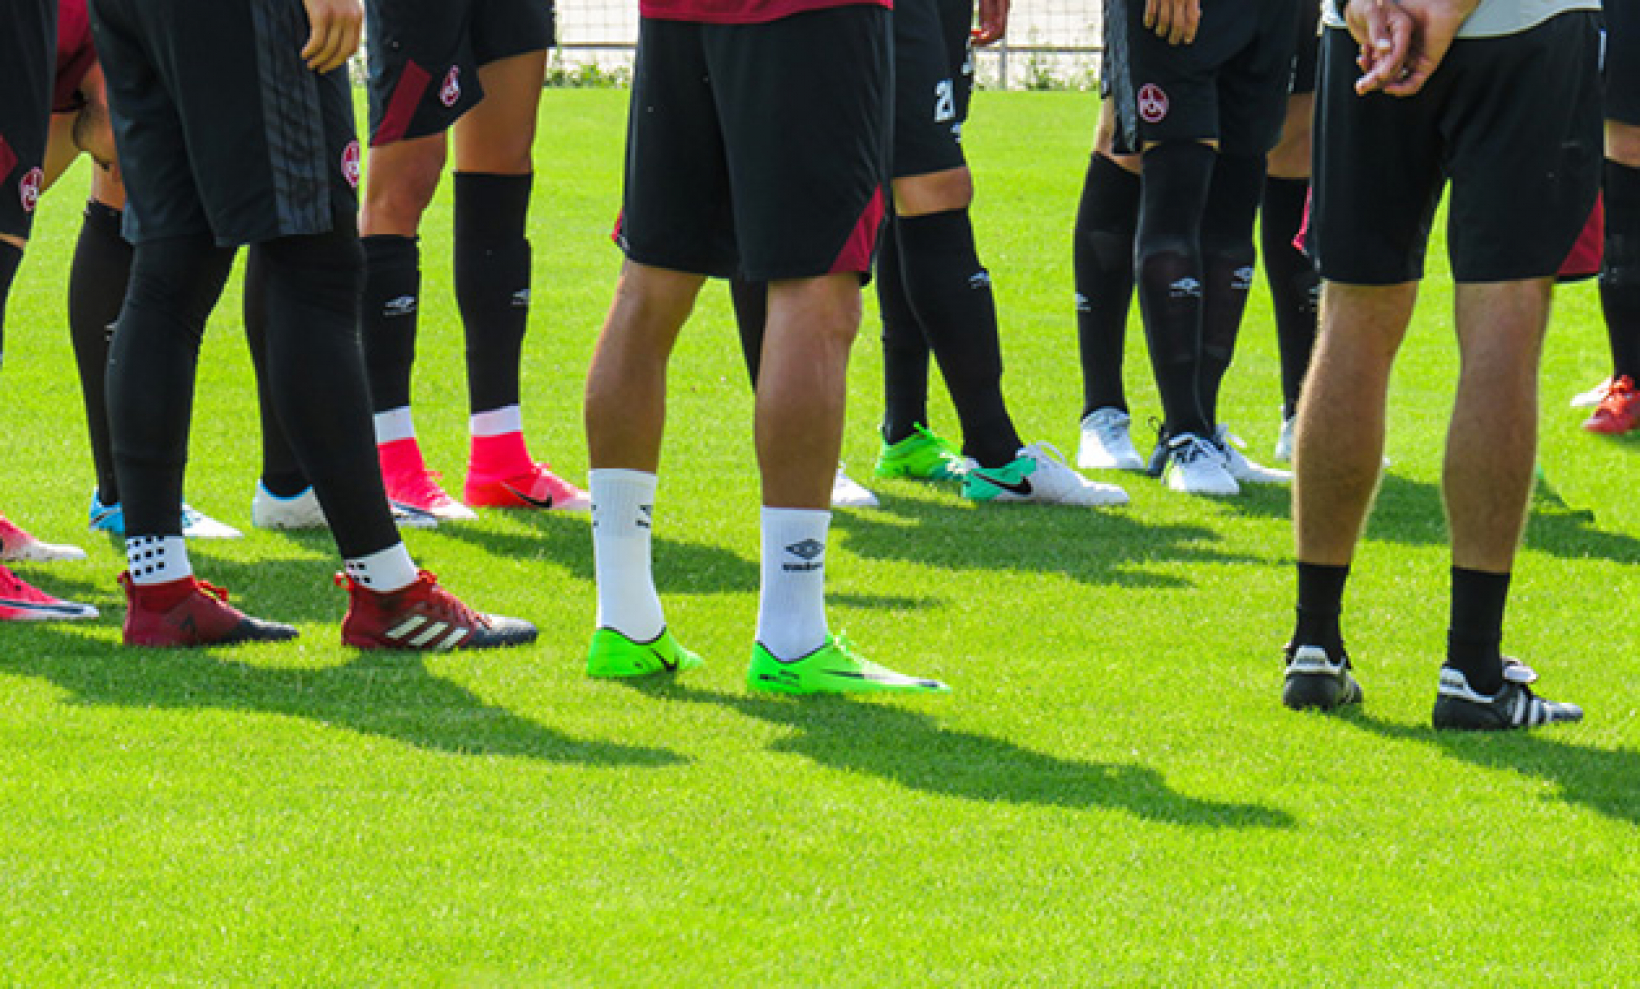 JOHAN GNSS-enabled sports trackers help improve team performance.